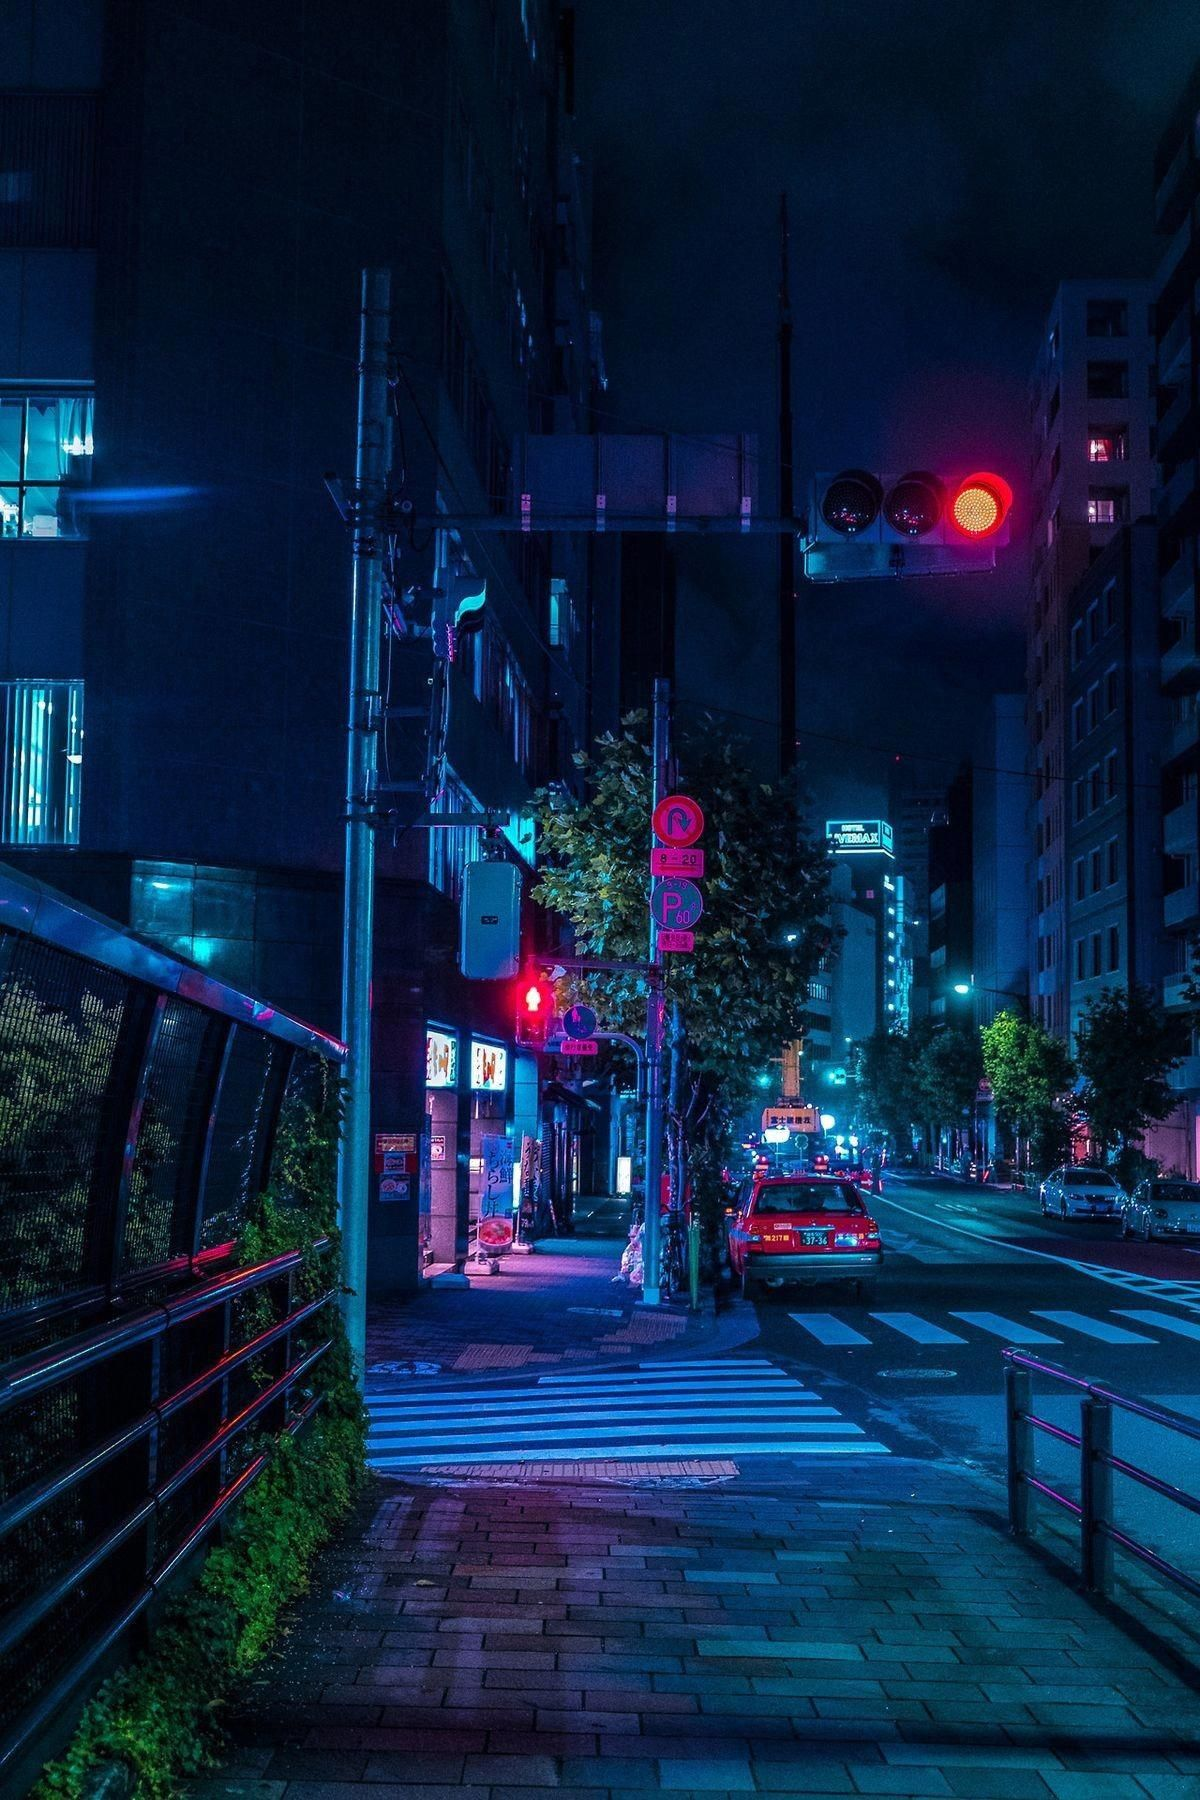 Choosing The Right Kind Of Mulch For Your Landscaping Urban Landscape Night Photography City Aesthetic